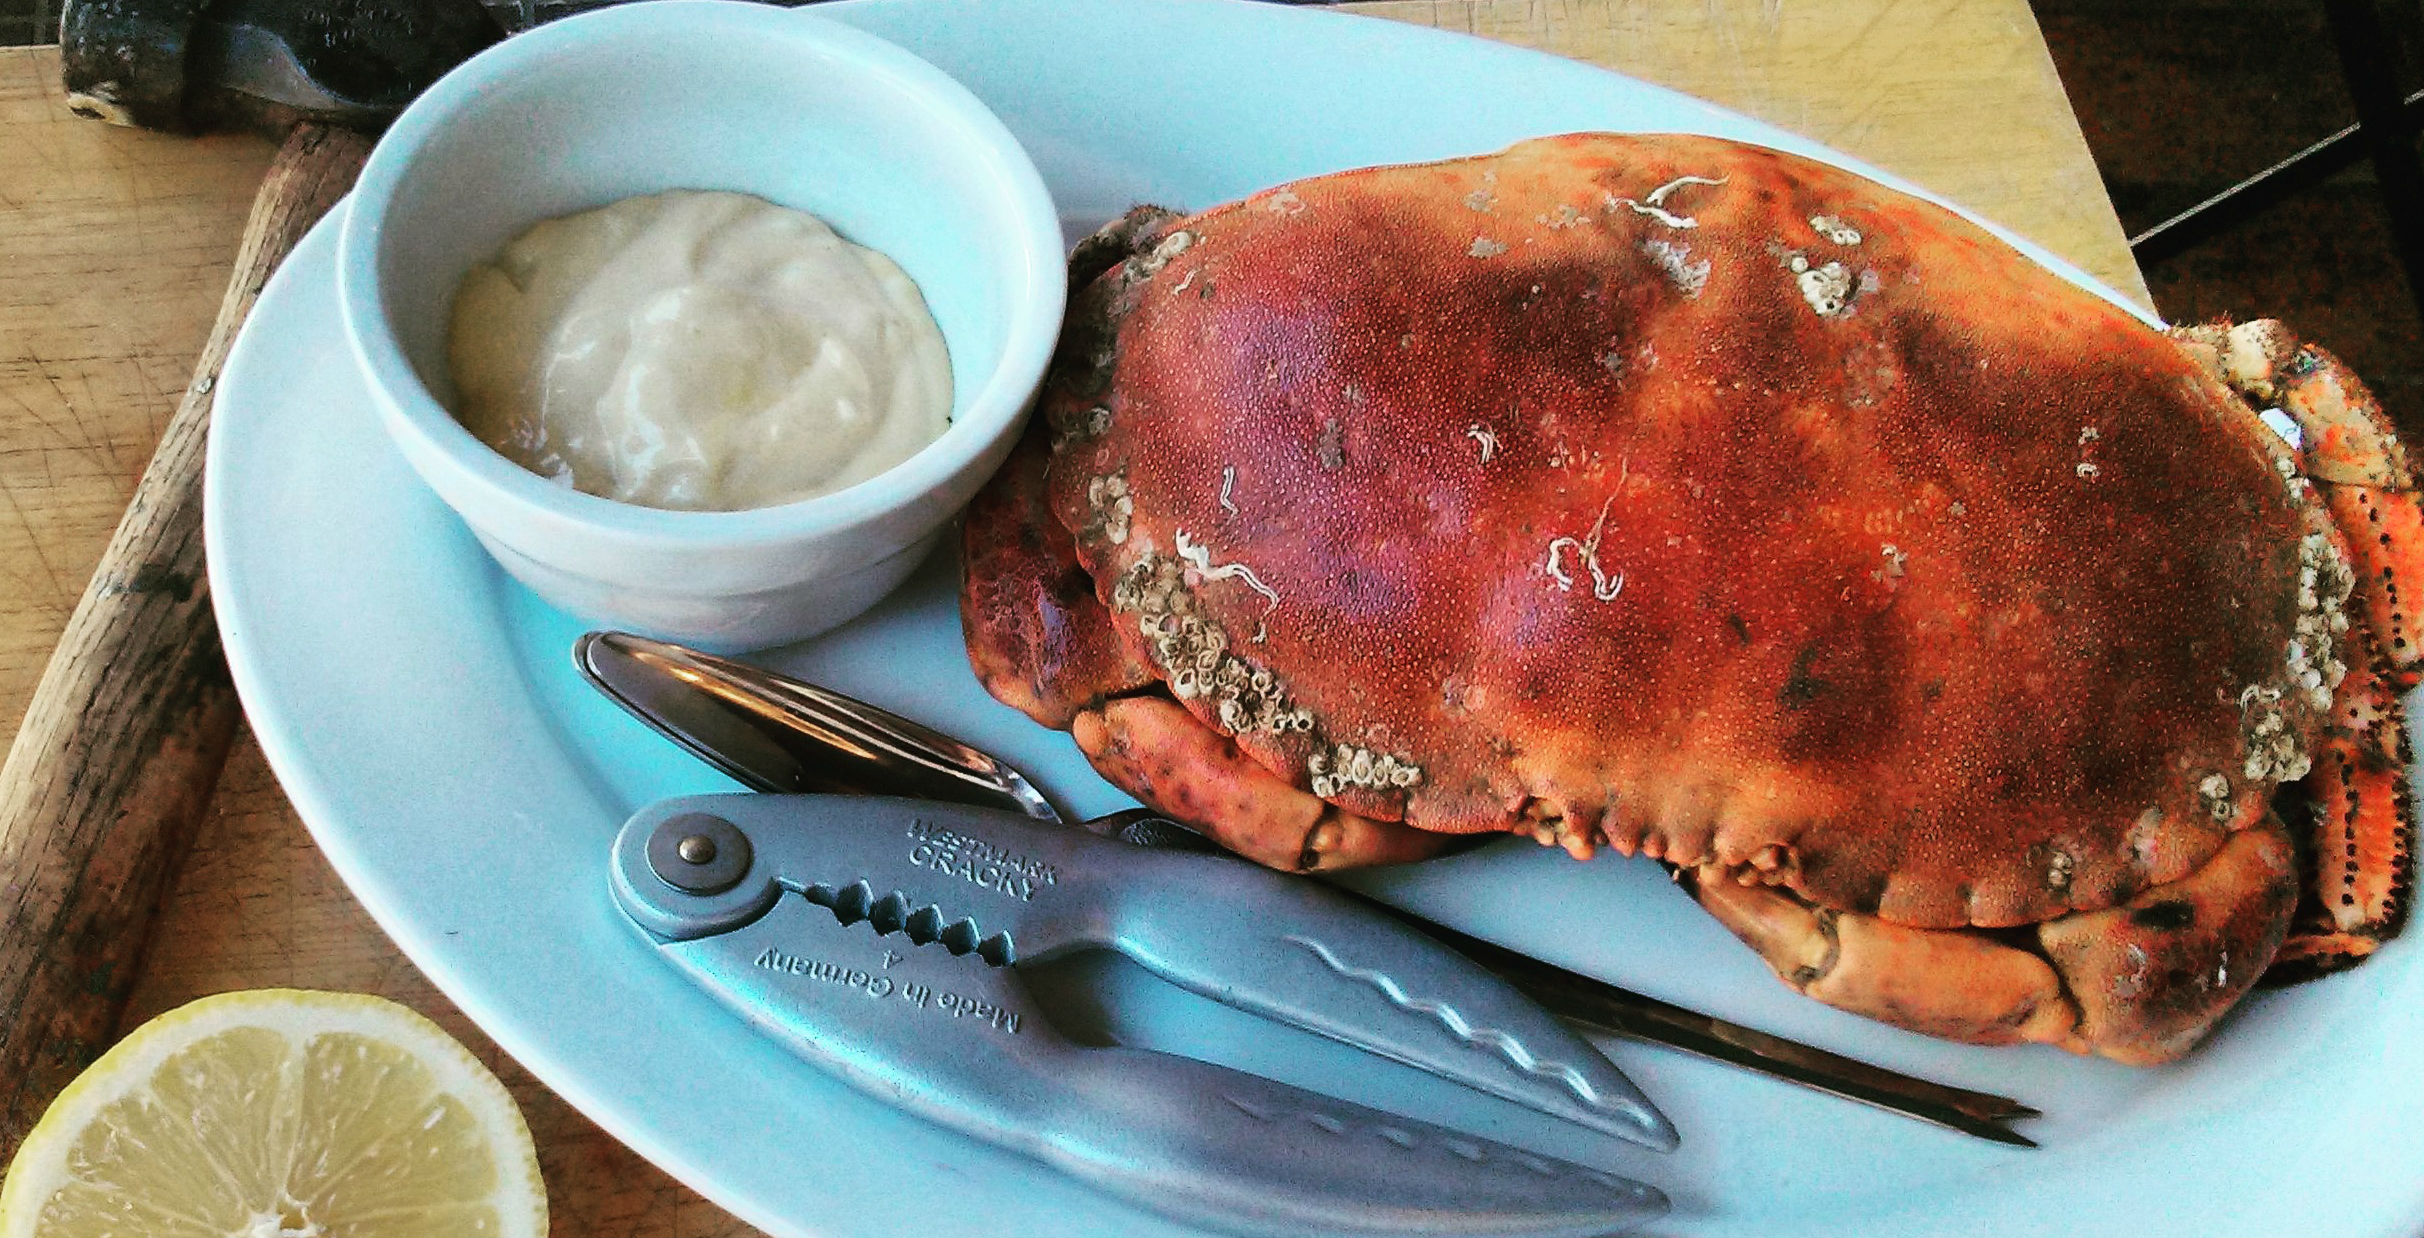 Shell-on whole crab with crab crackers at Hantverk & Found, Margate